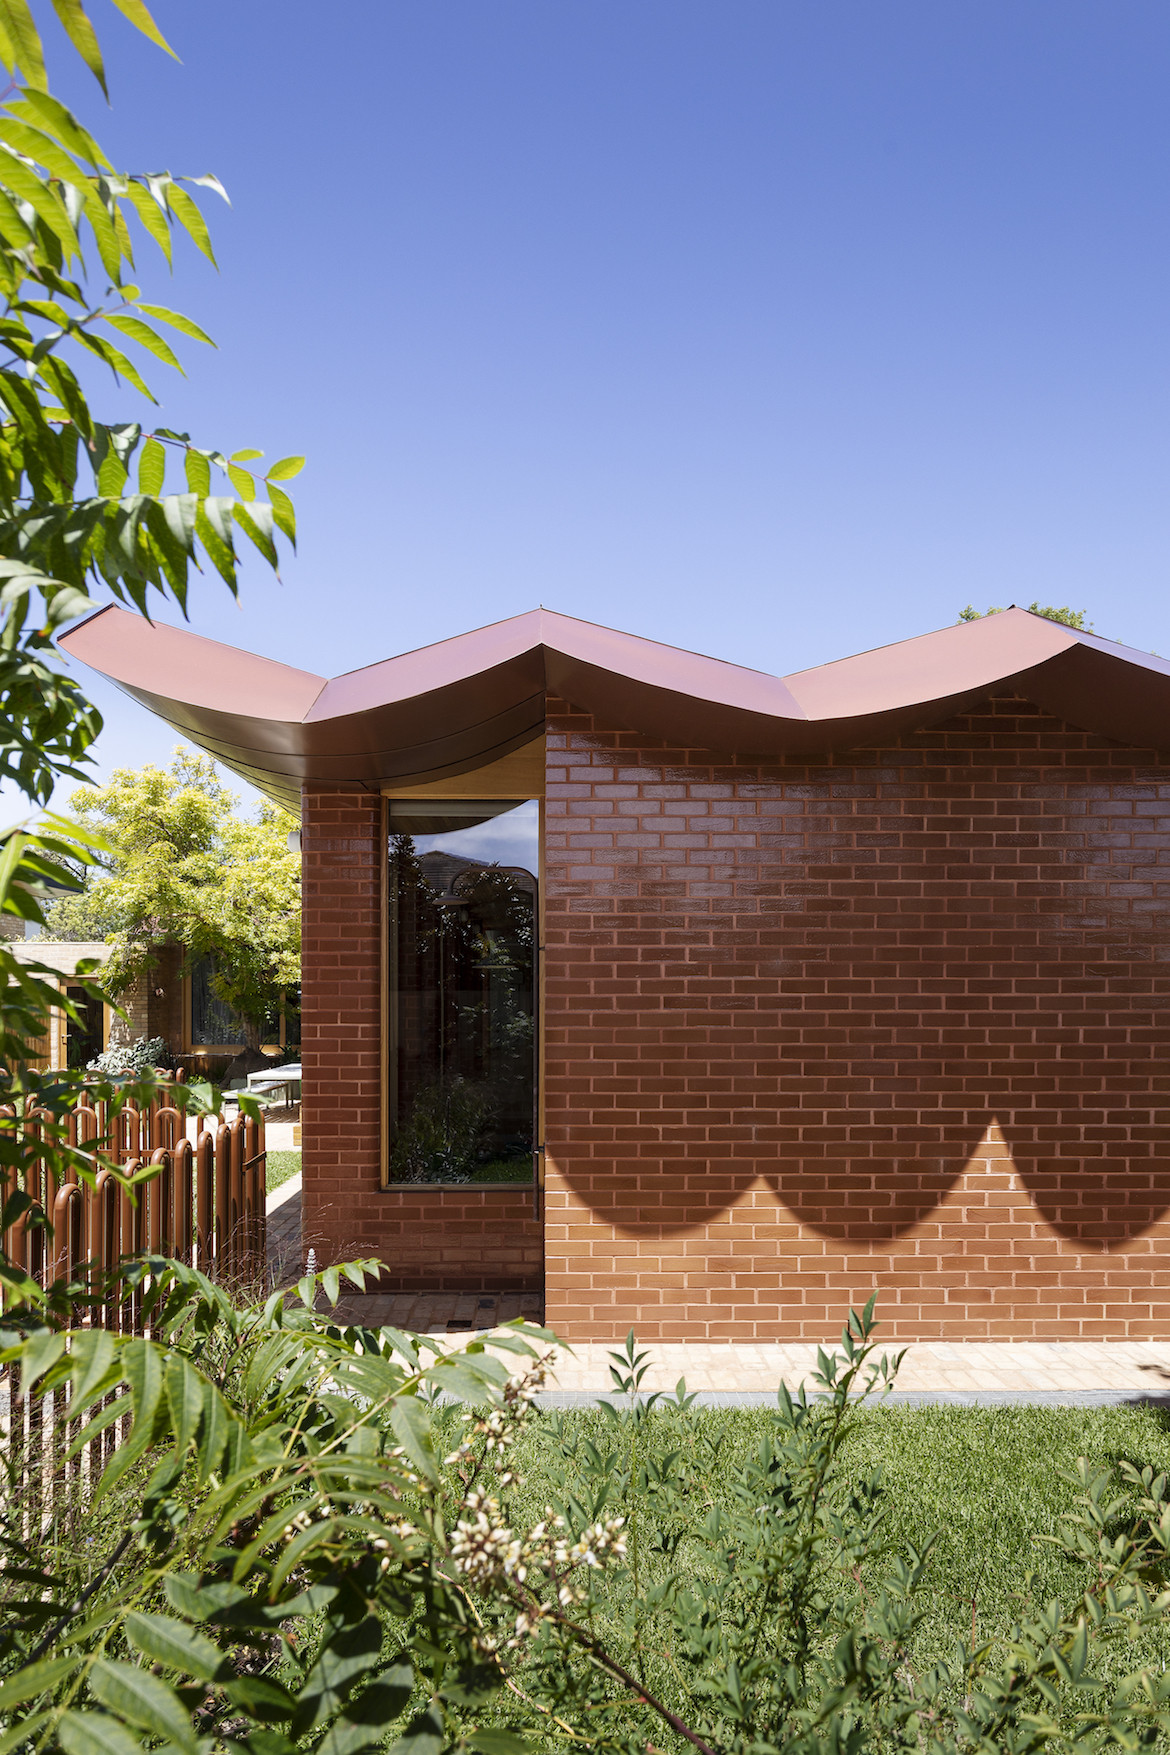 Inverted arched shadows on the glazed brick wall of the Wowowa designed home..